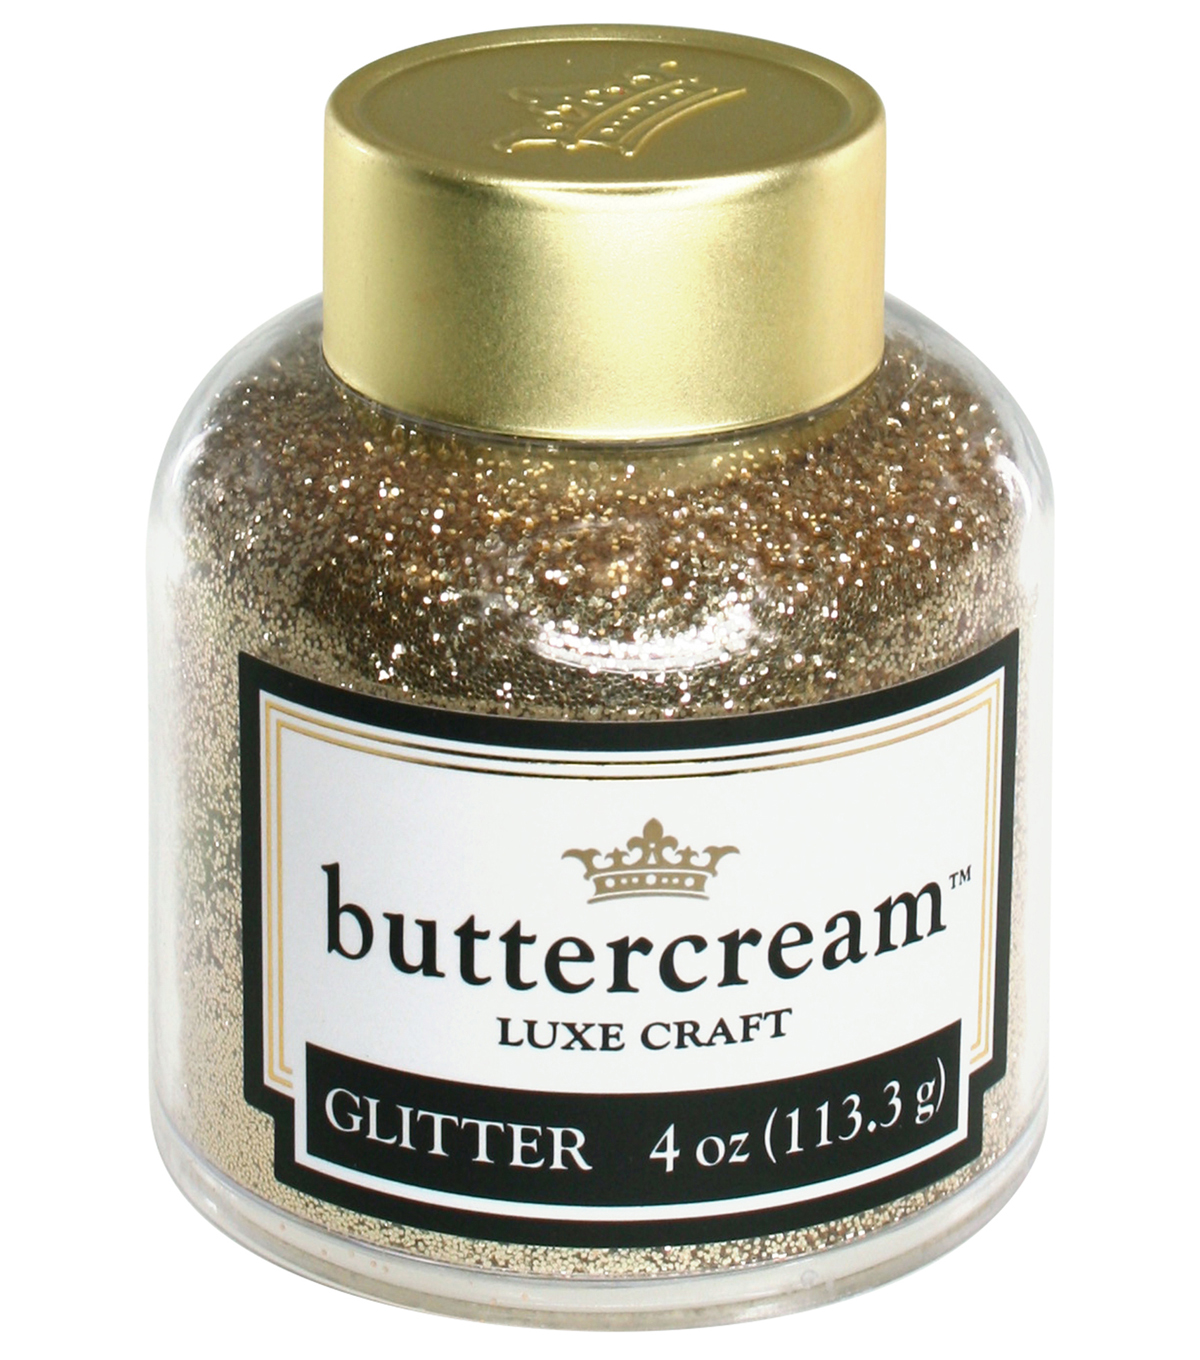 Buttercream Collection Luxe Craft Extra Fine Glitter